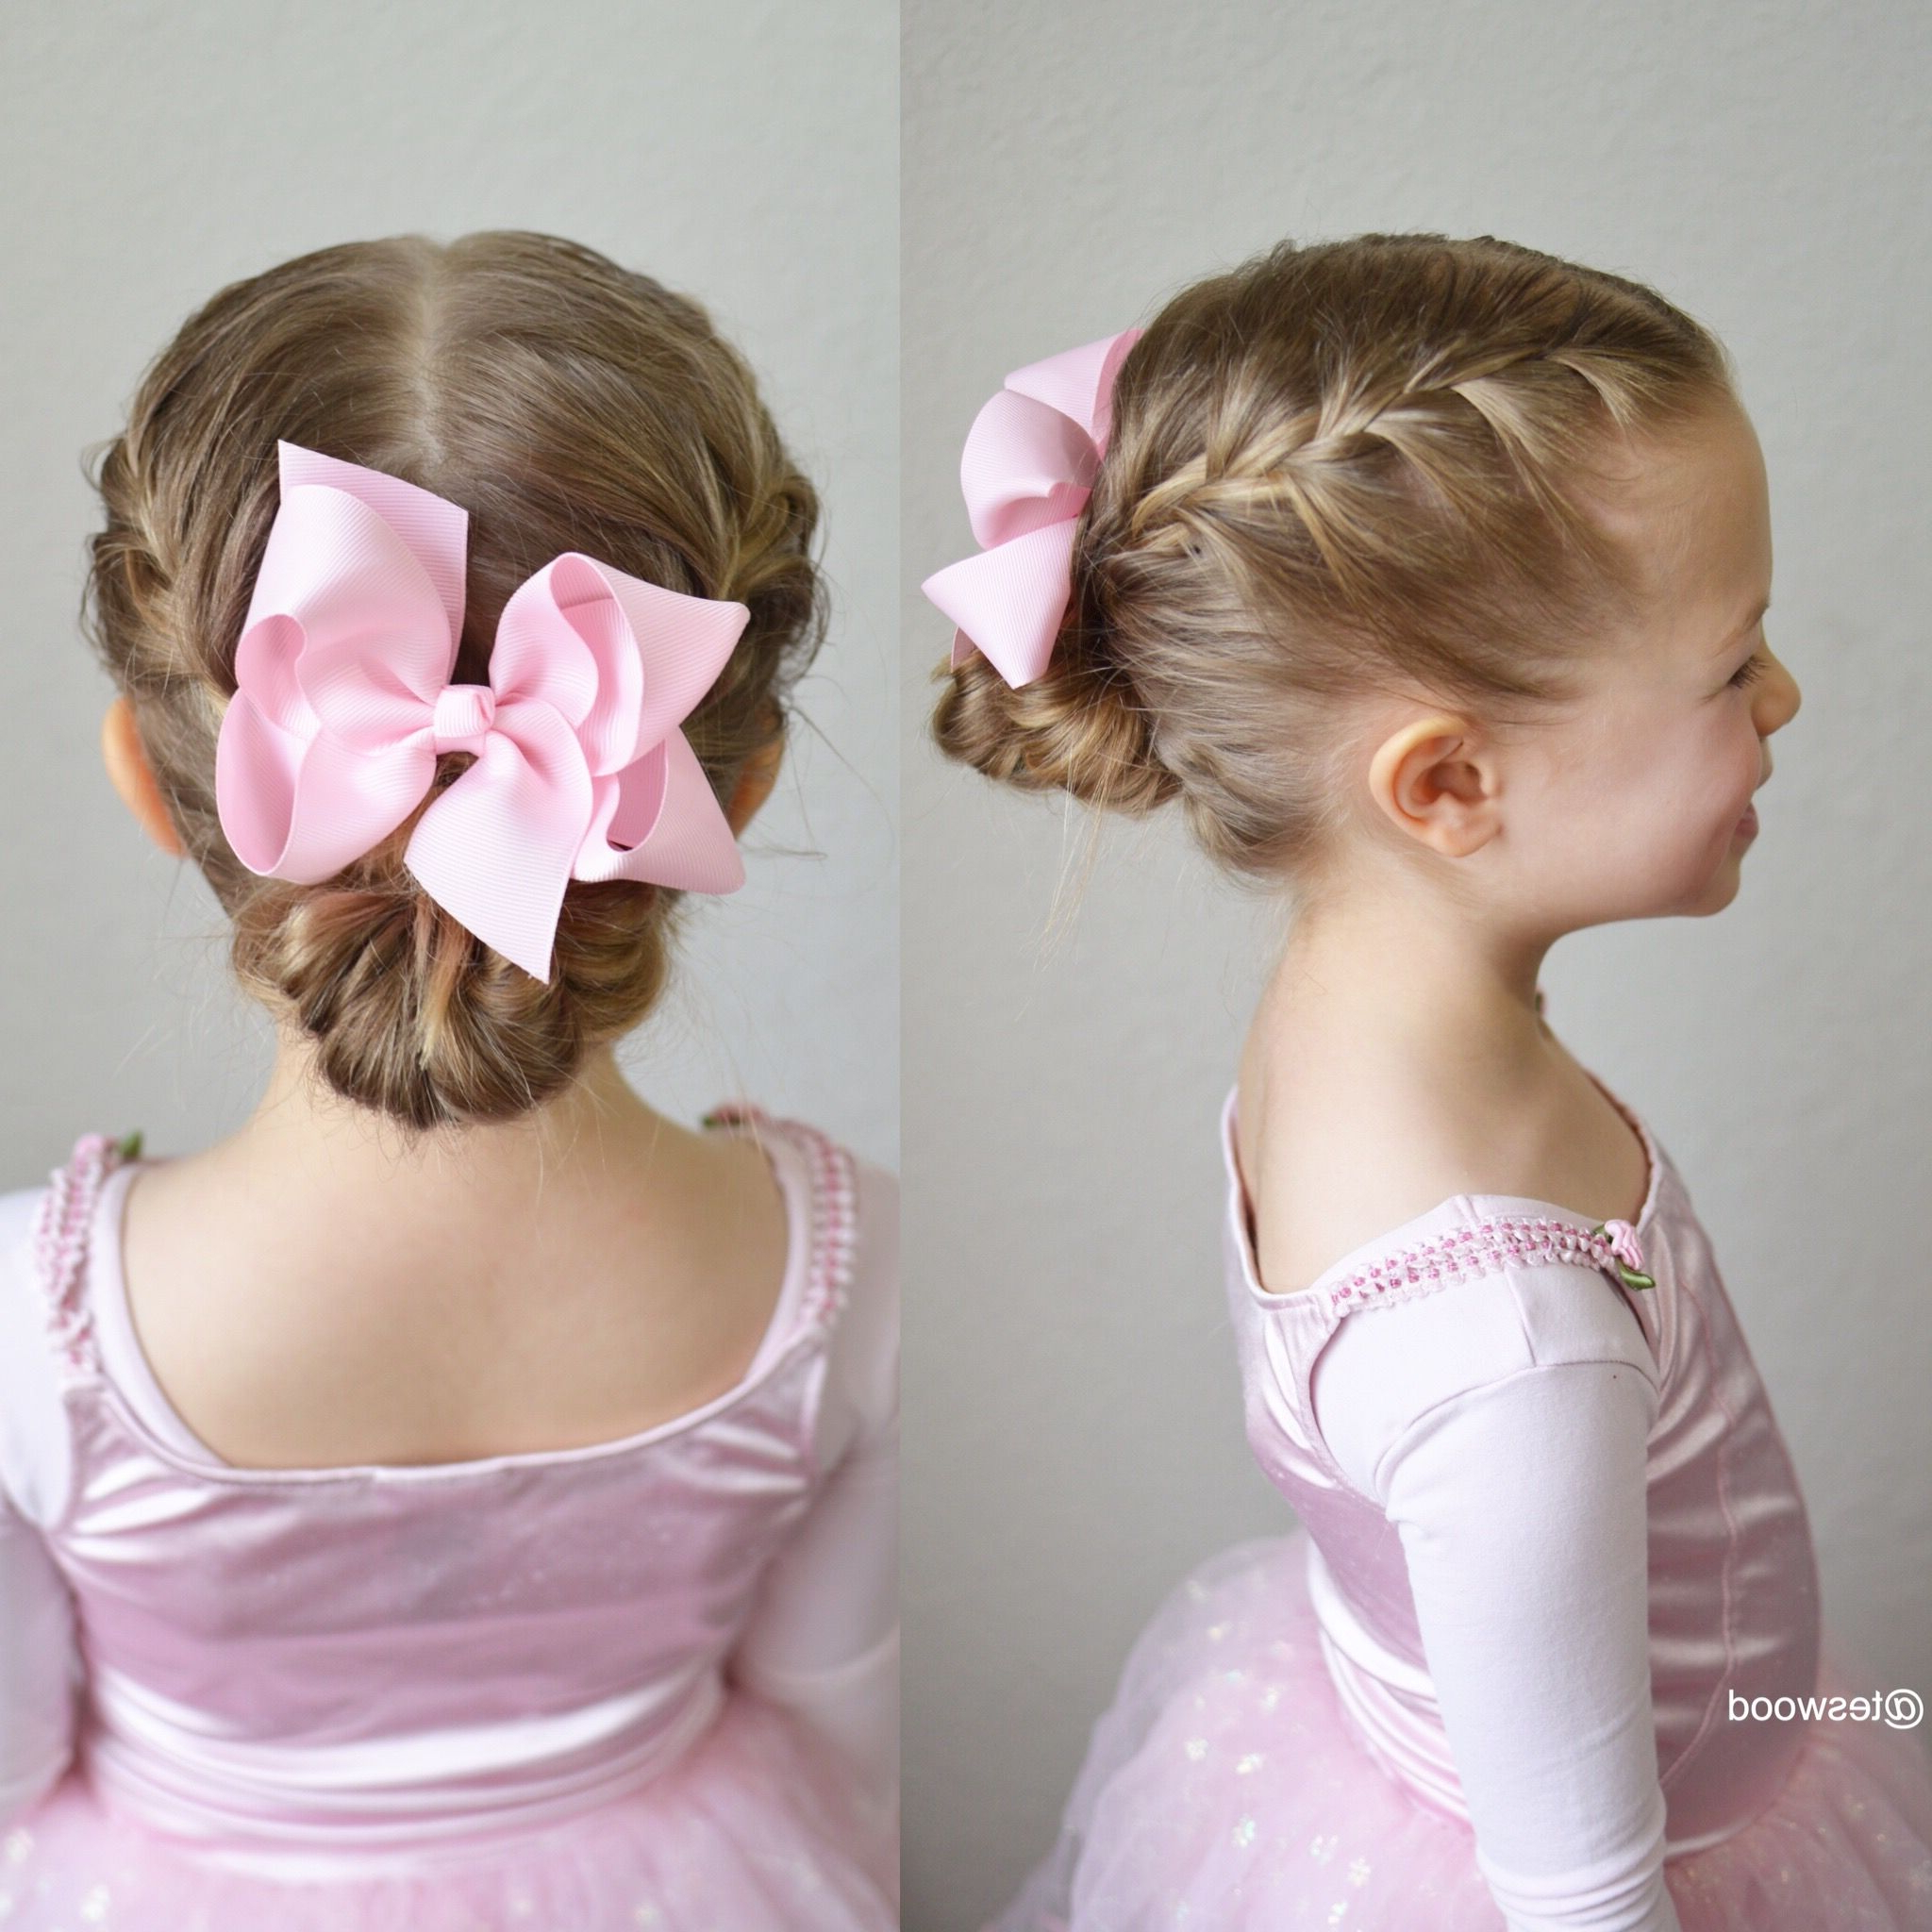 Double French Braids Into A Messy Bun (View 18 of 20)